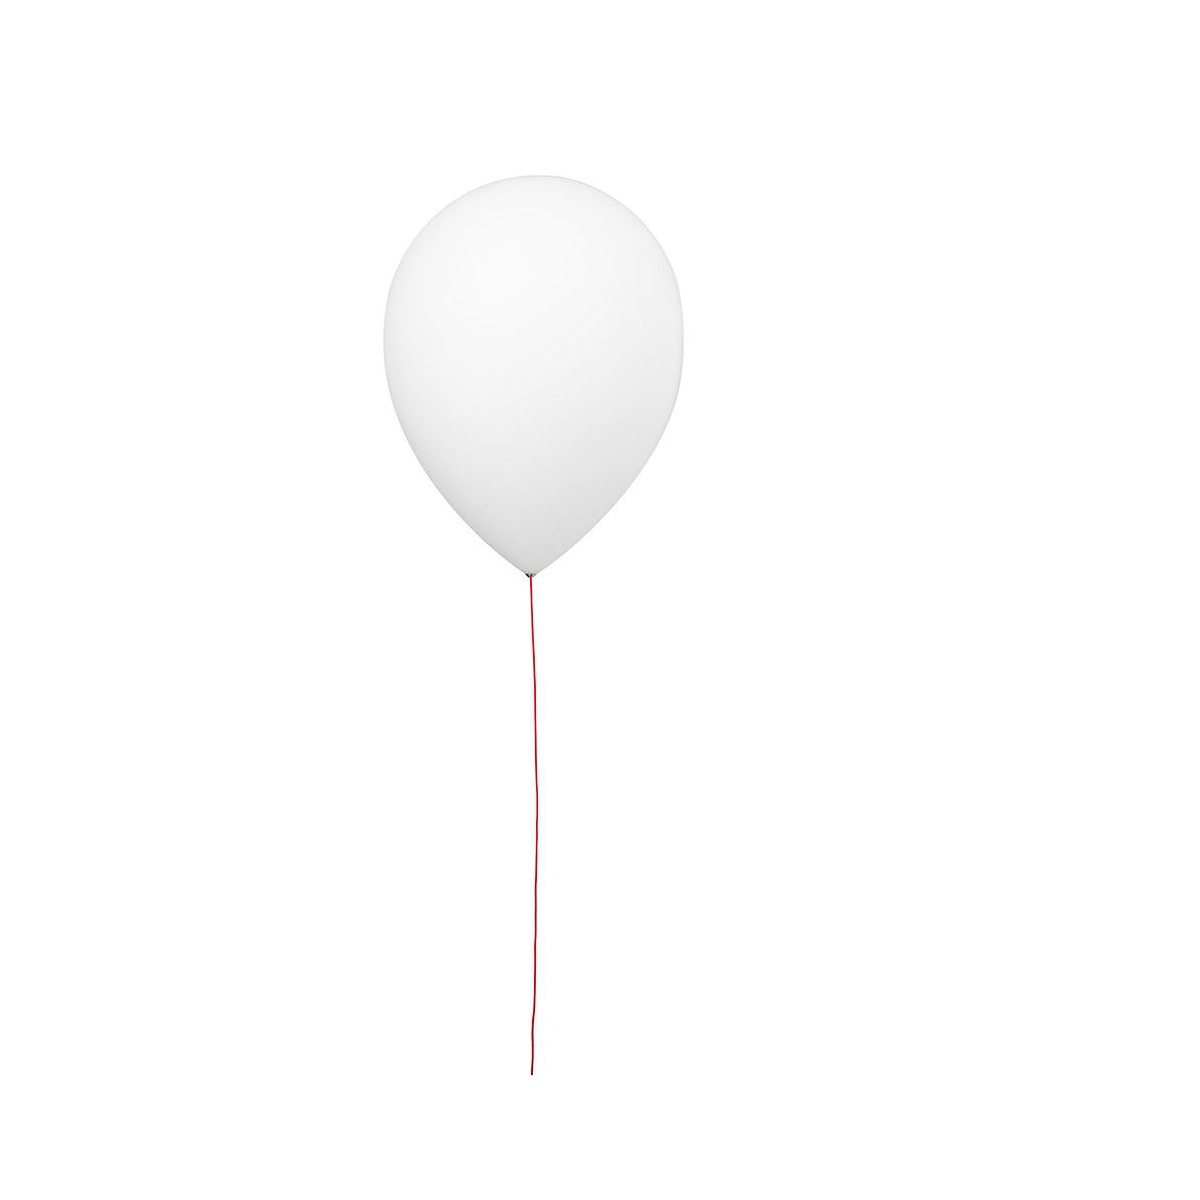 Balloon A 3050L Aplique 26cm E27 20w + LED E14 0.5w blanco